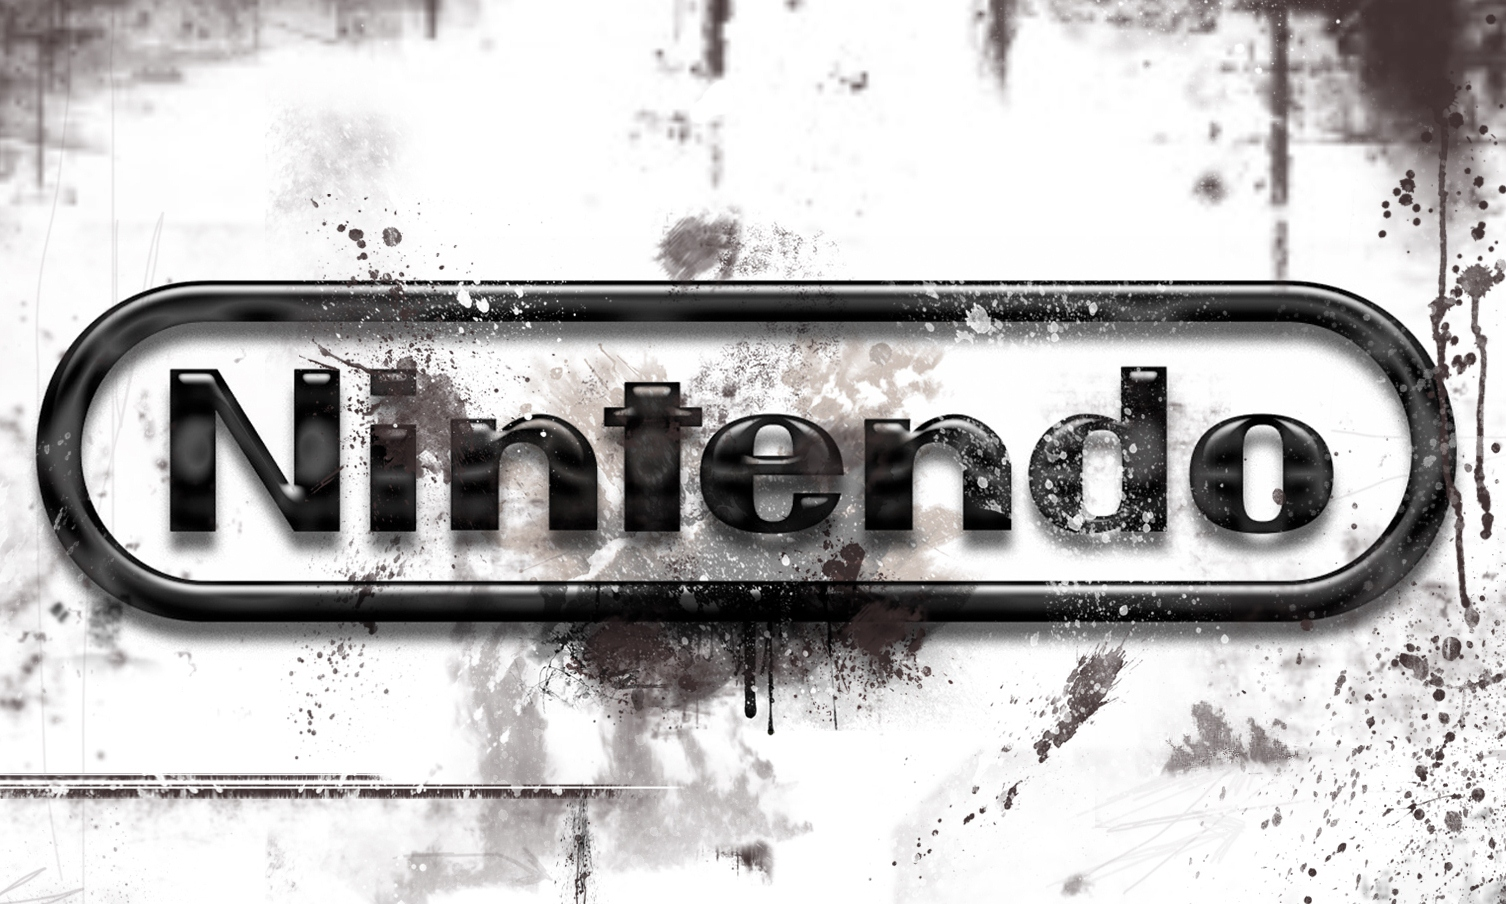 RUMOR: Nintendo To Announce Mario Maker At E3 2014